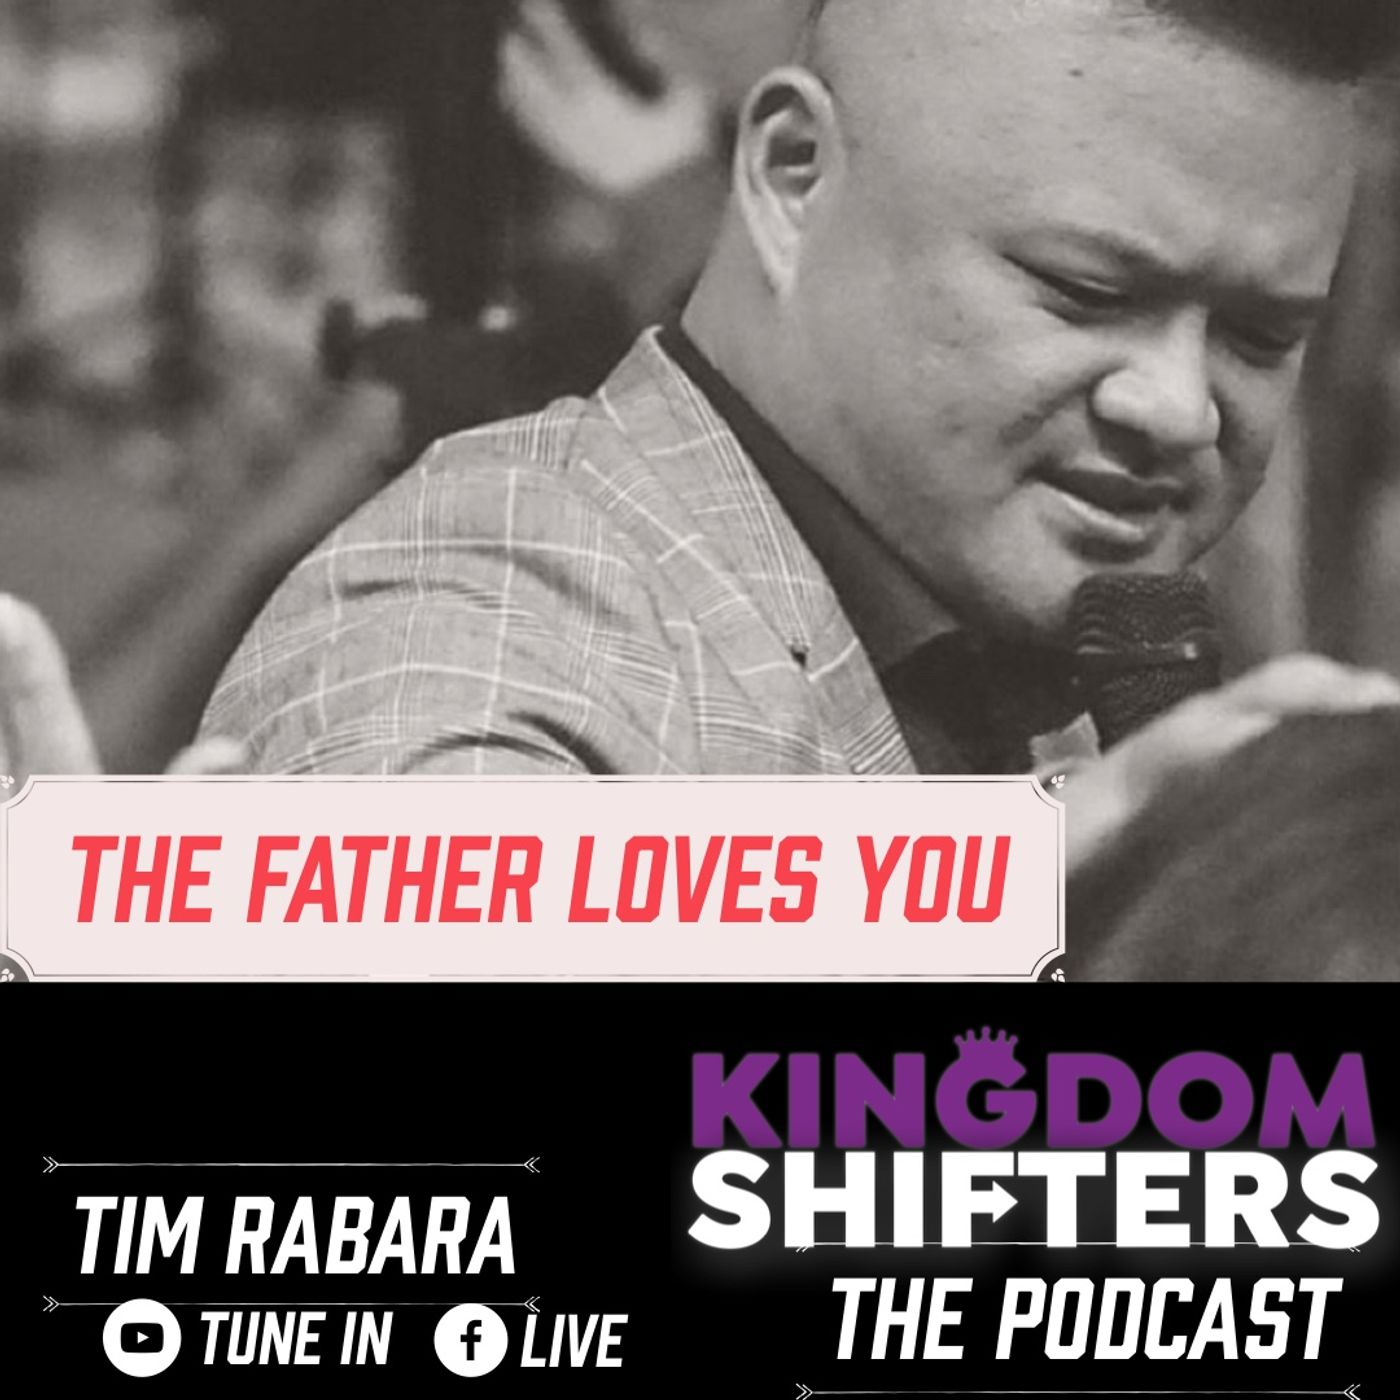 Kingdom Shifters The Podcast Evangelist Tim Rabara - The Fathers Love For You